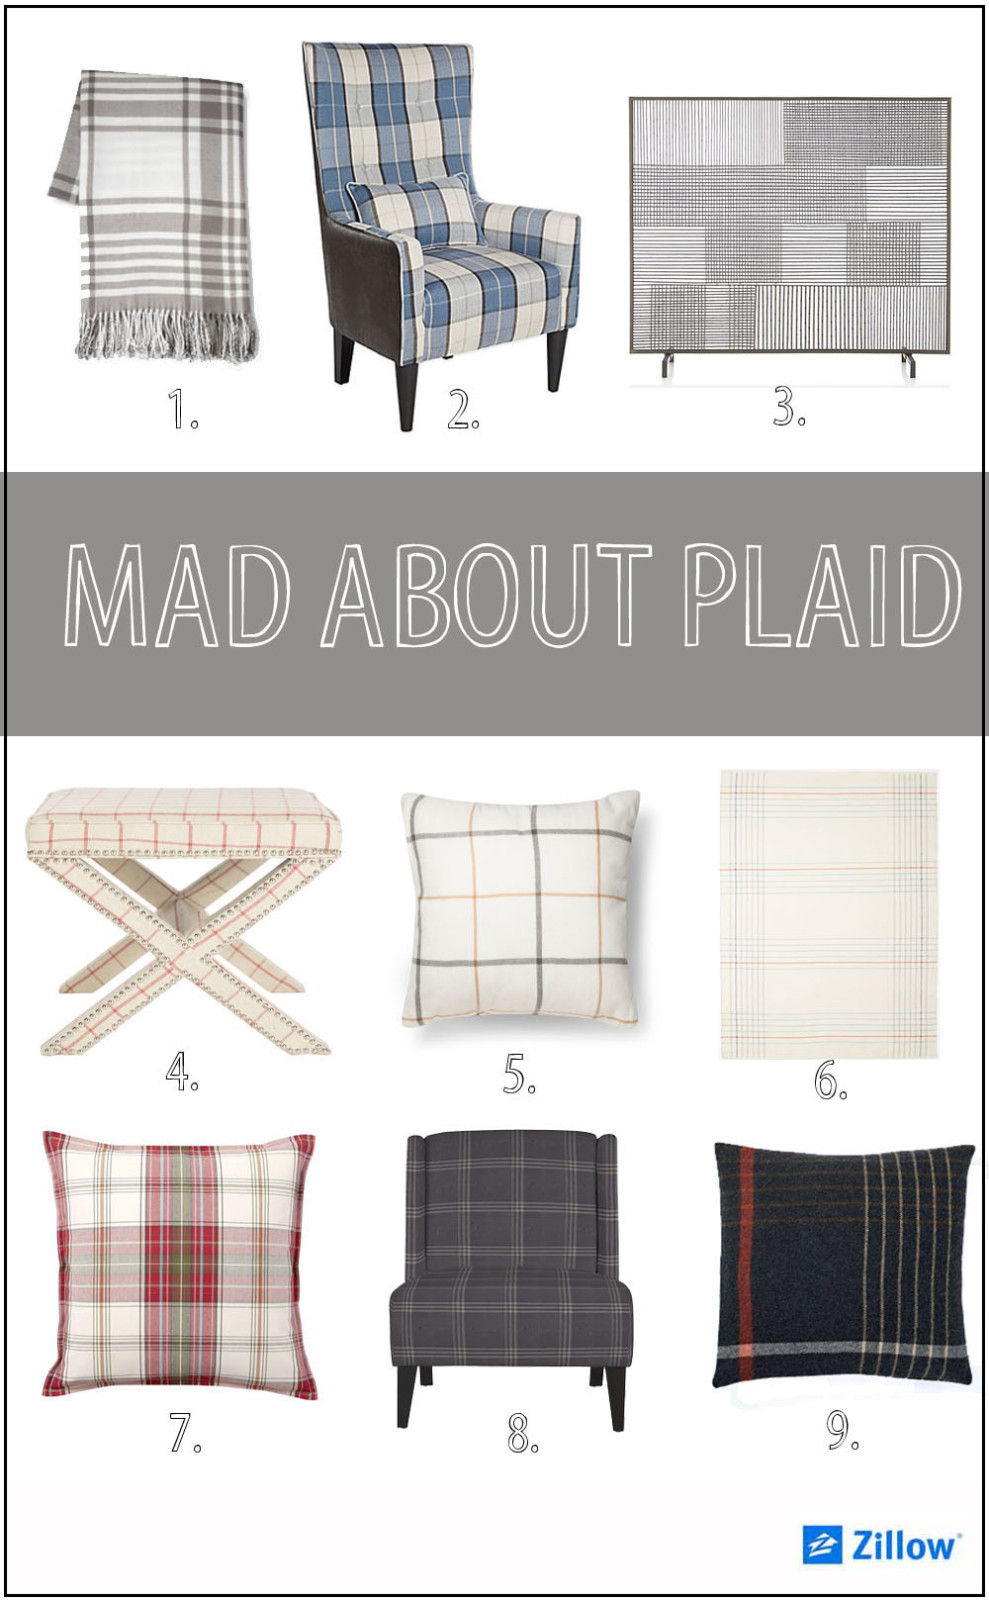 mad about plaid branded